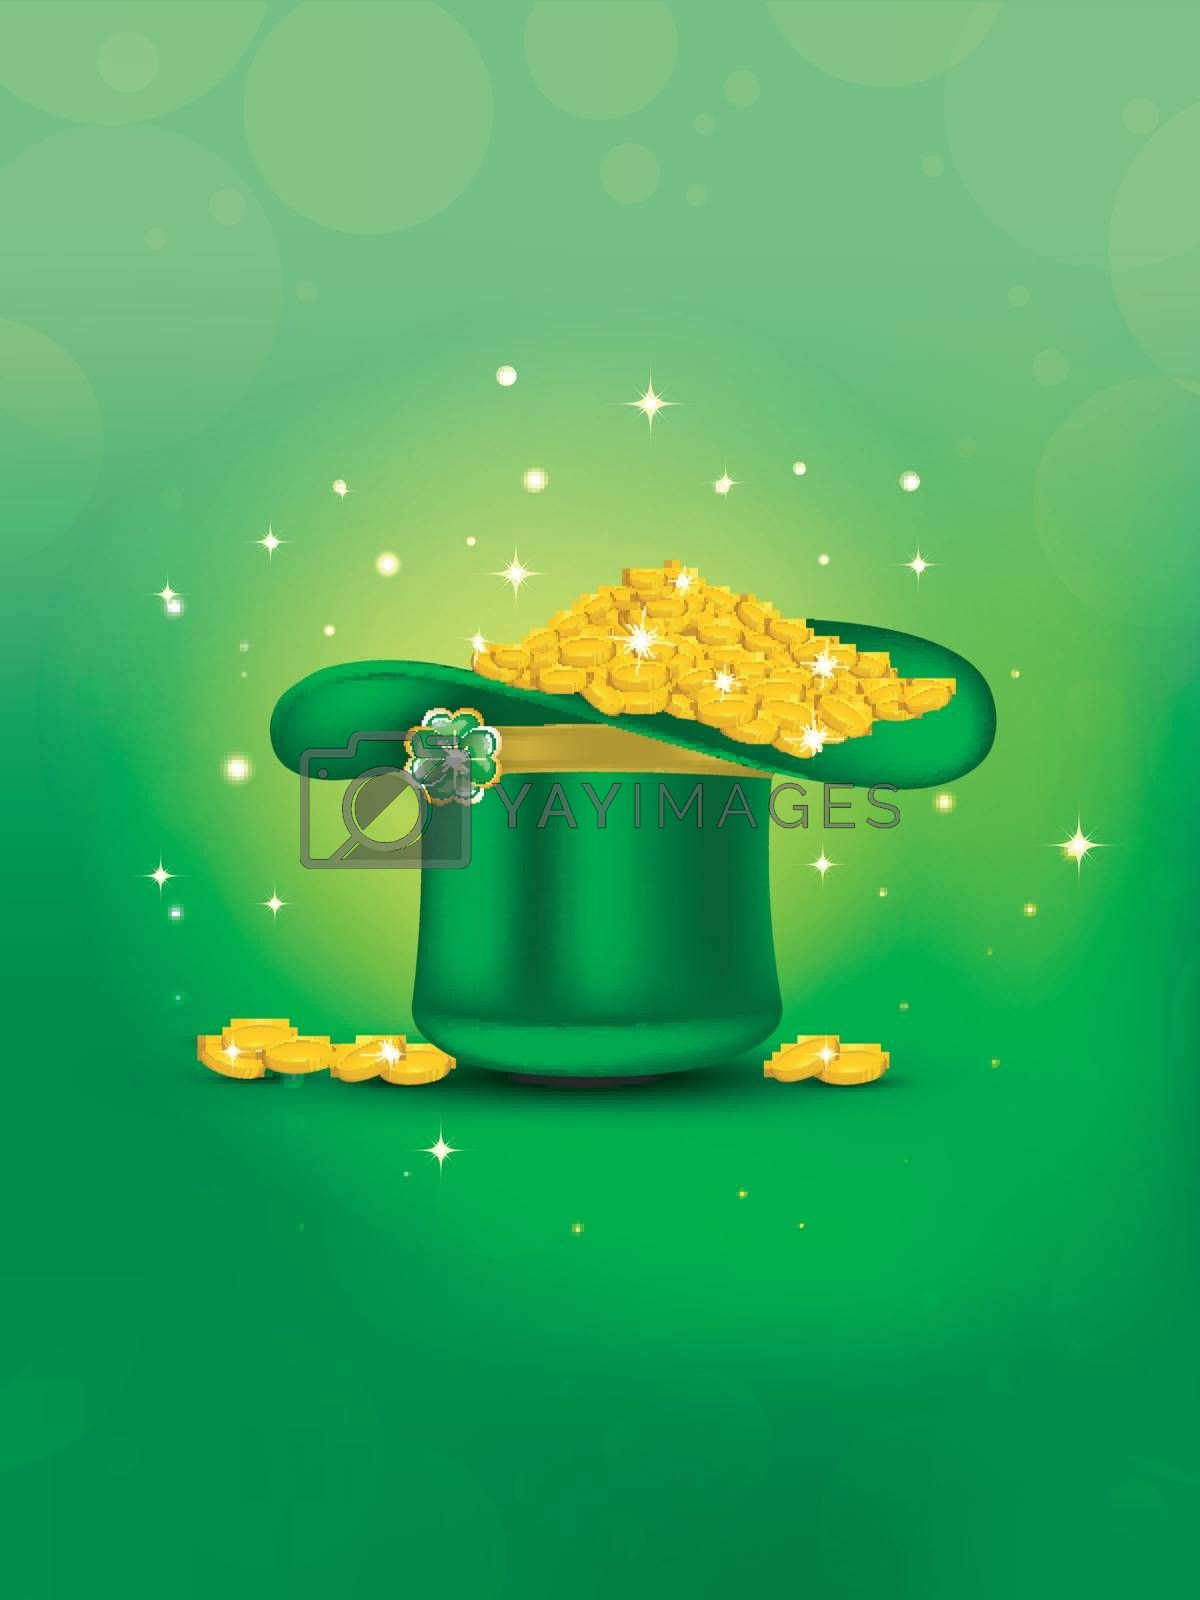 Royalty free image of Green background decorated with tiny shamrock leaves for St. Pat by aispl